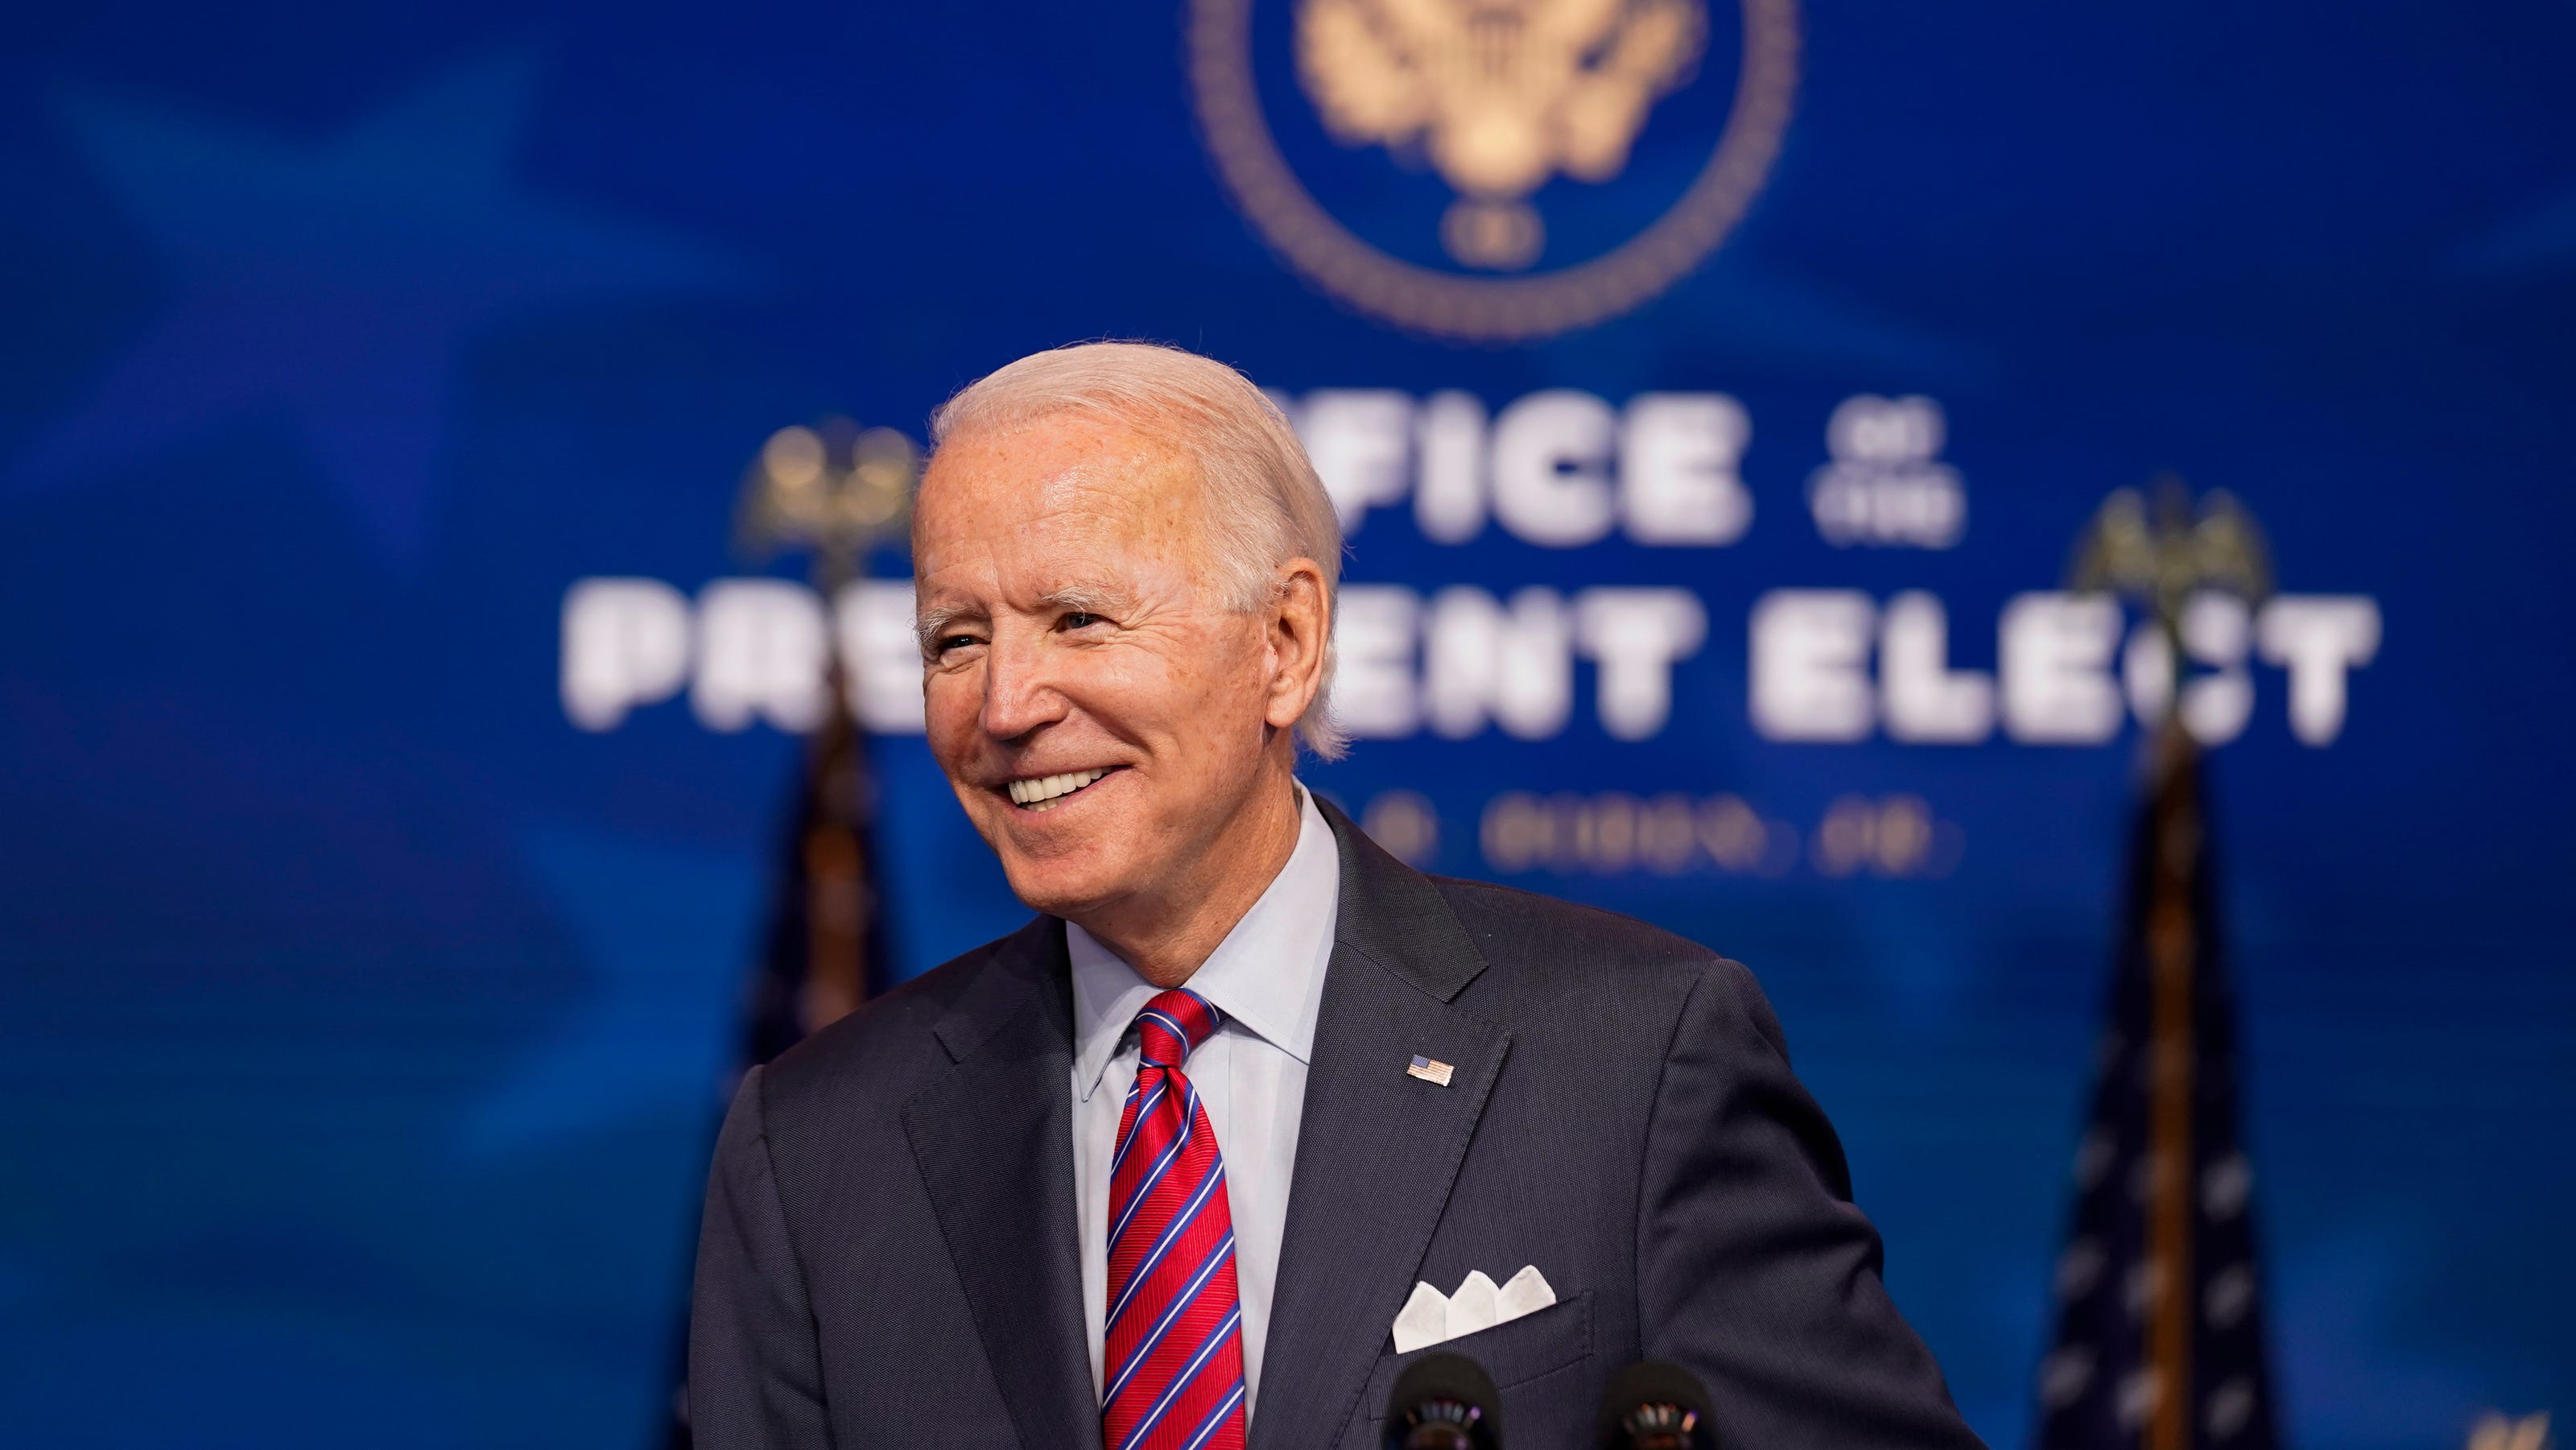 www.usatoday.com: Live politics updates: Civil rights leaders to discuss appointees with Biden; Biden picks for DOD, Justice expected this week